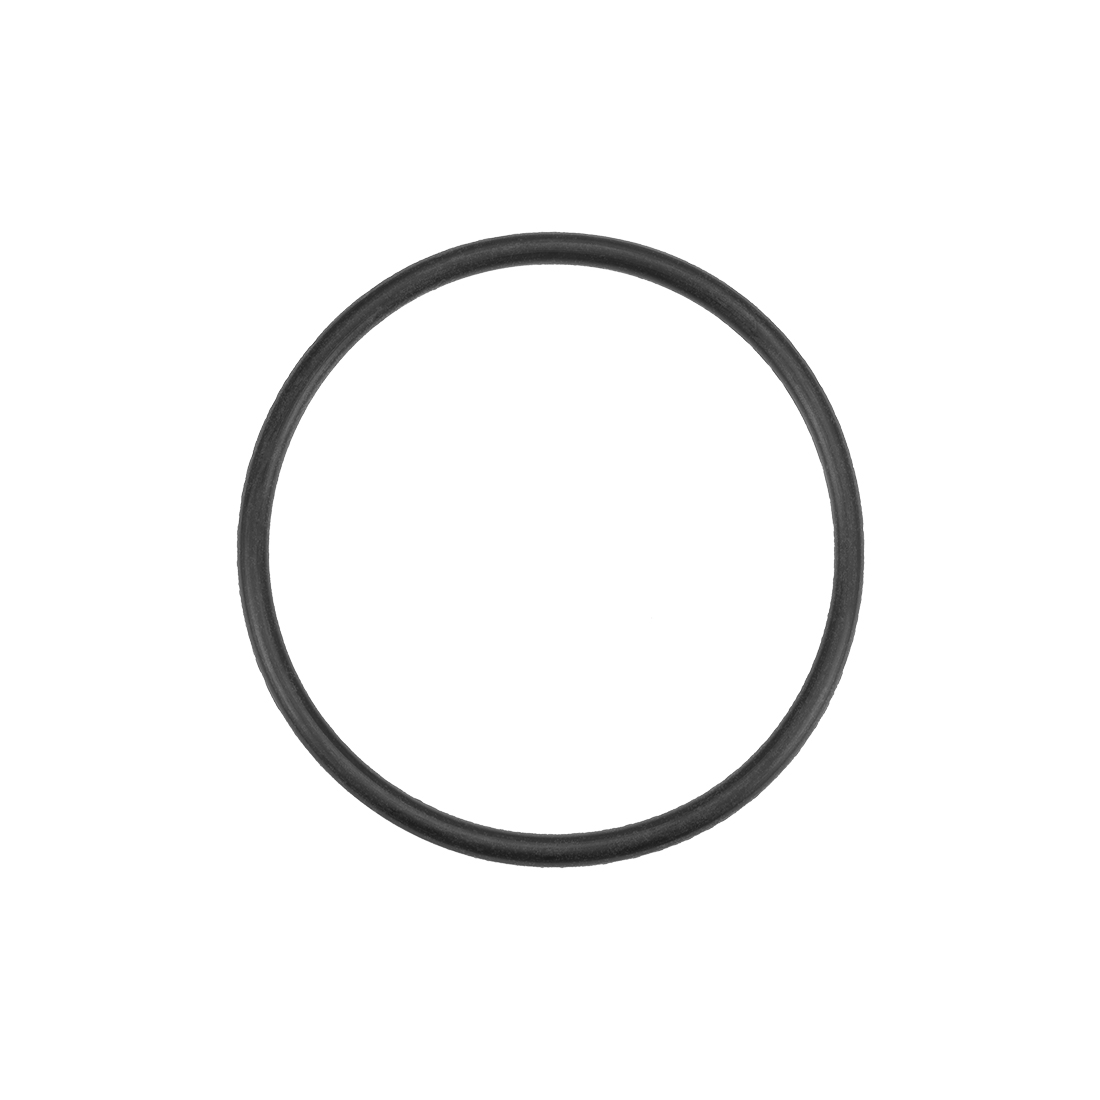 O-Rings Nitrile Rubber 46.2mm x 51.5mm x 2.65mm Round Seal Gasket